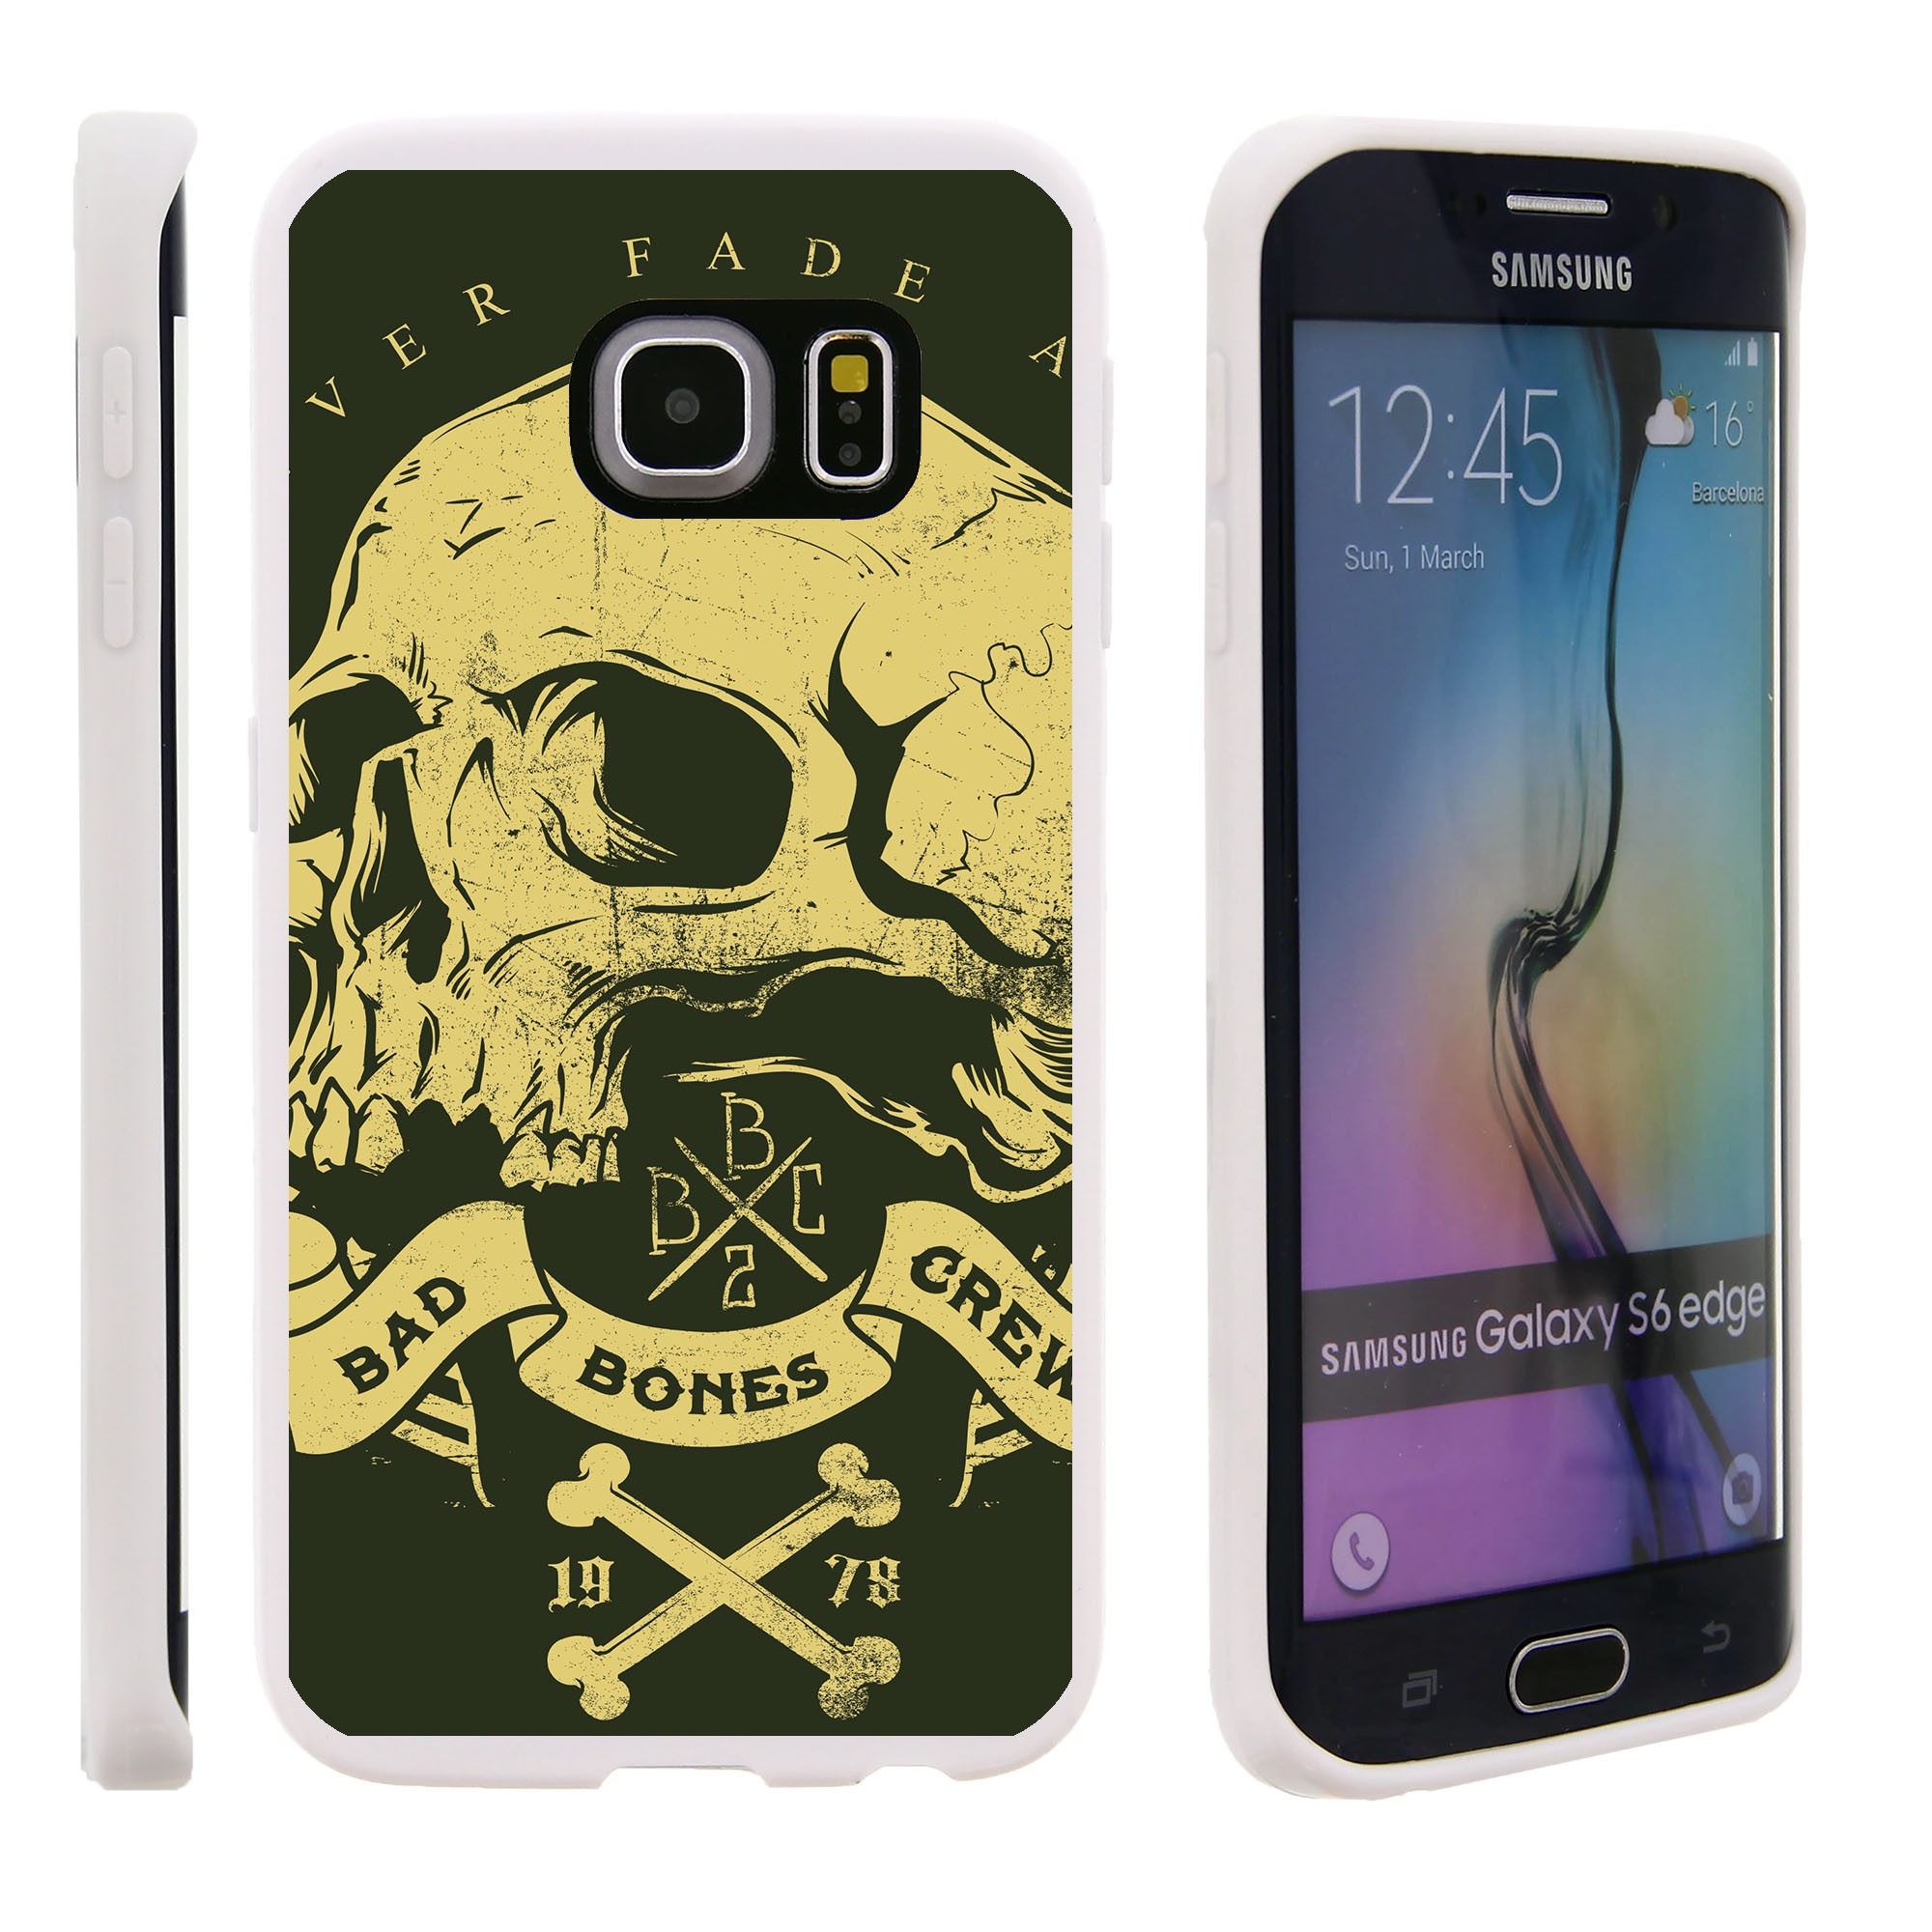 Samsung Galaxy S6 Edge G925, Flexible Case [FLEX FORCE] Slim Durable TPU Sleek Bumper with Unique Designs - Yellow Skull